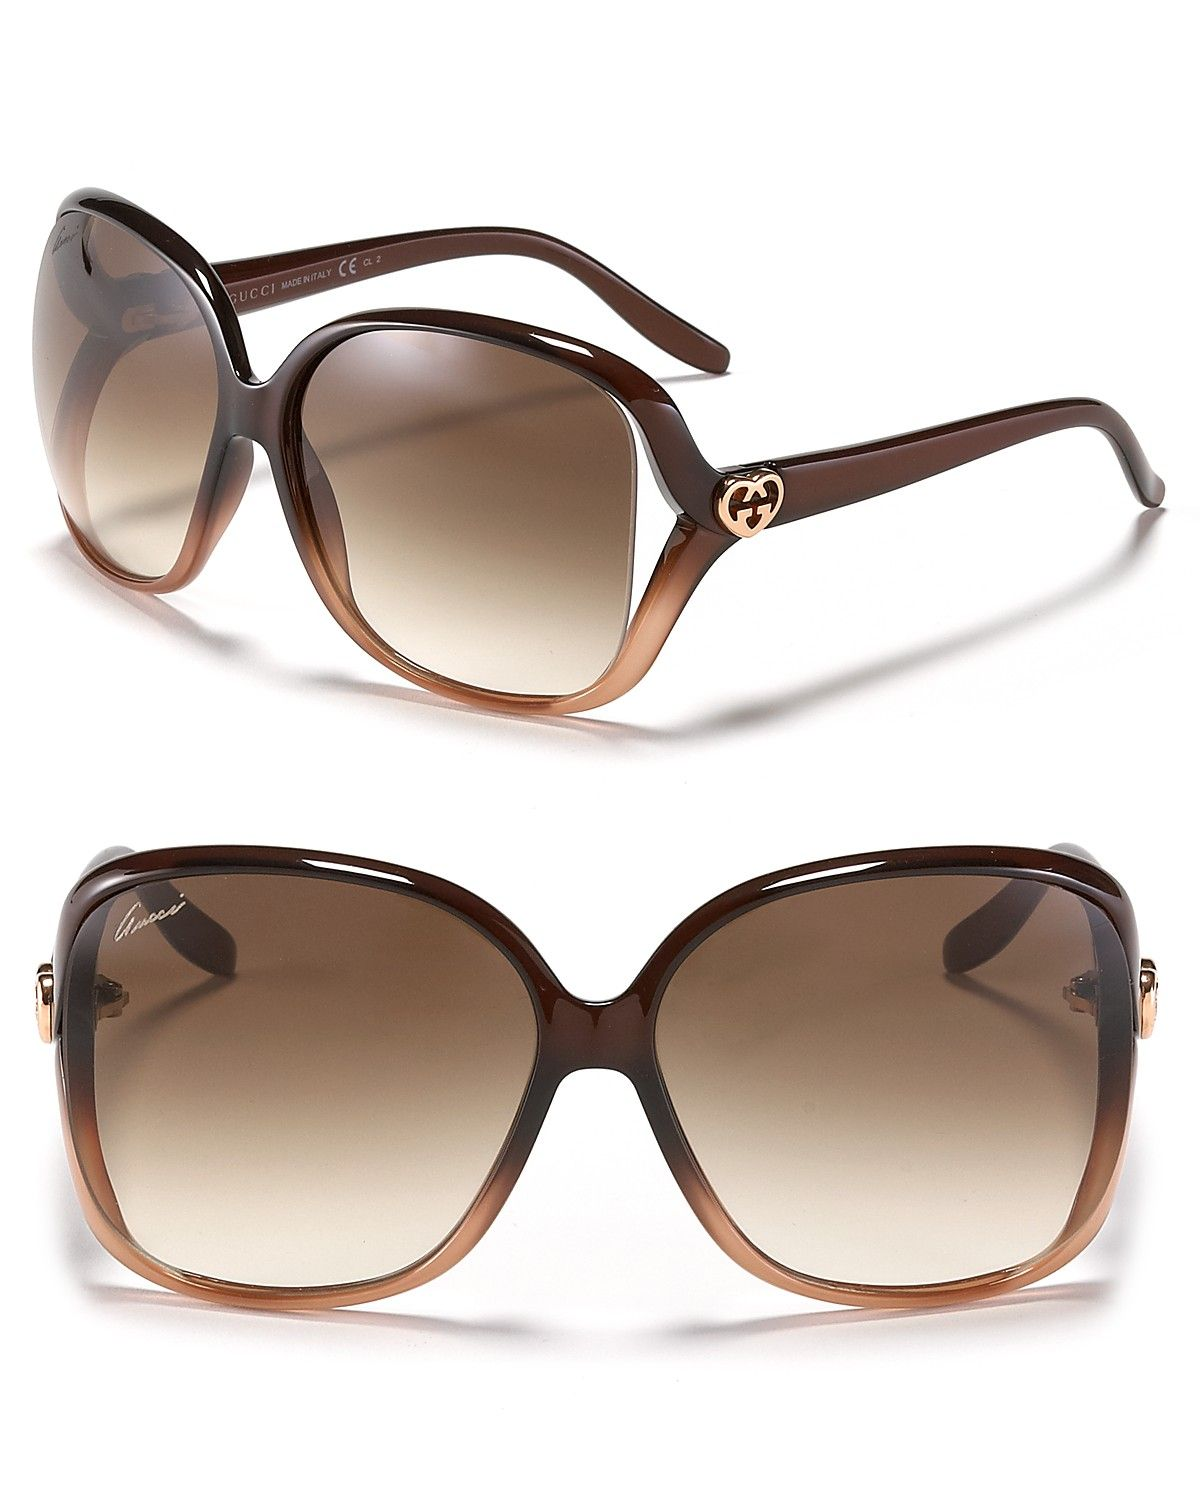 ab2faa5233 Gucci Oversized Square Frame Sunglasses with Open Sides ...